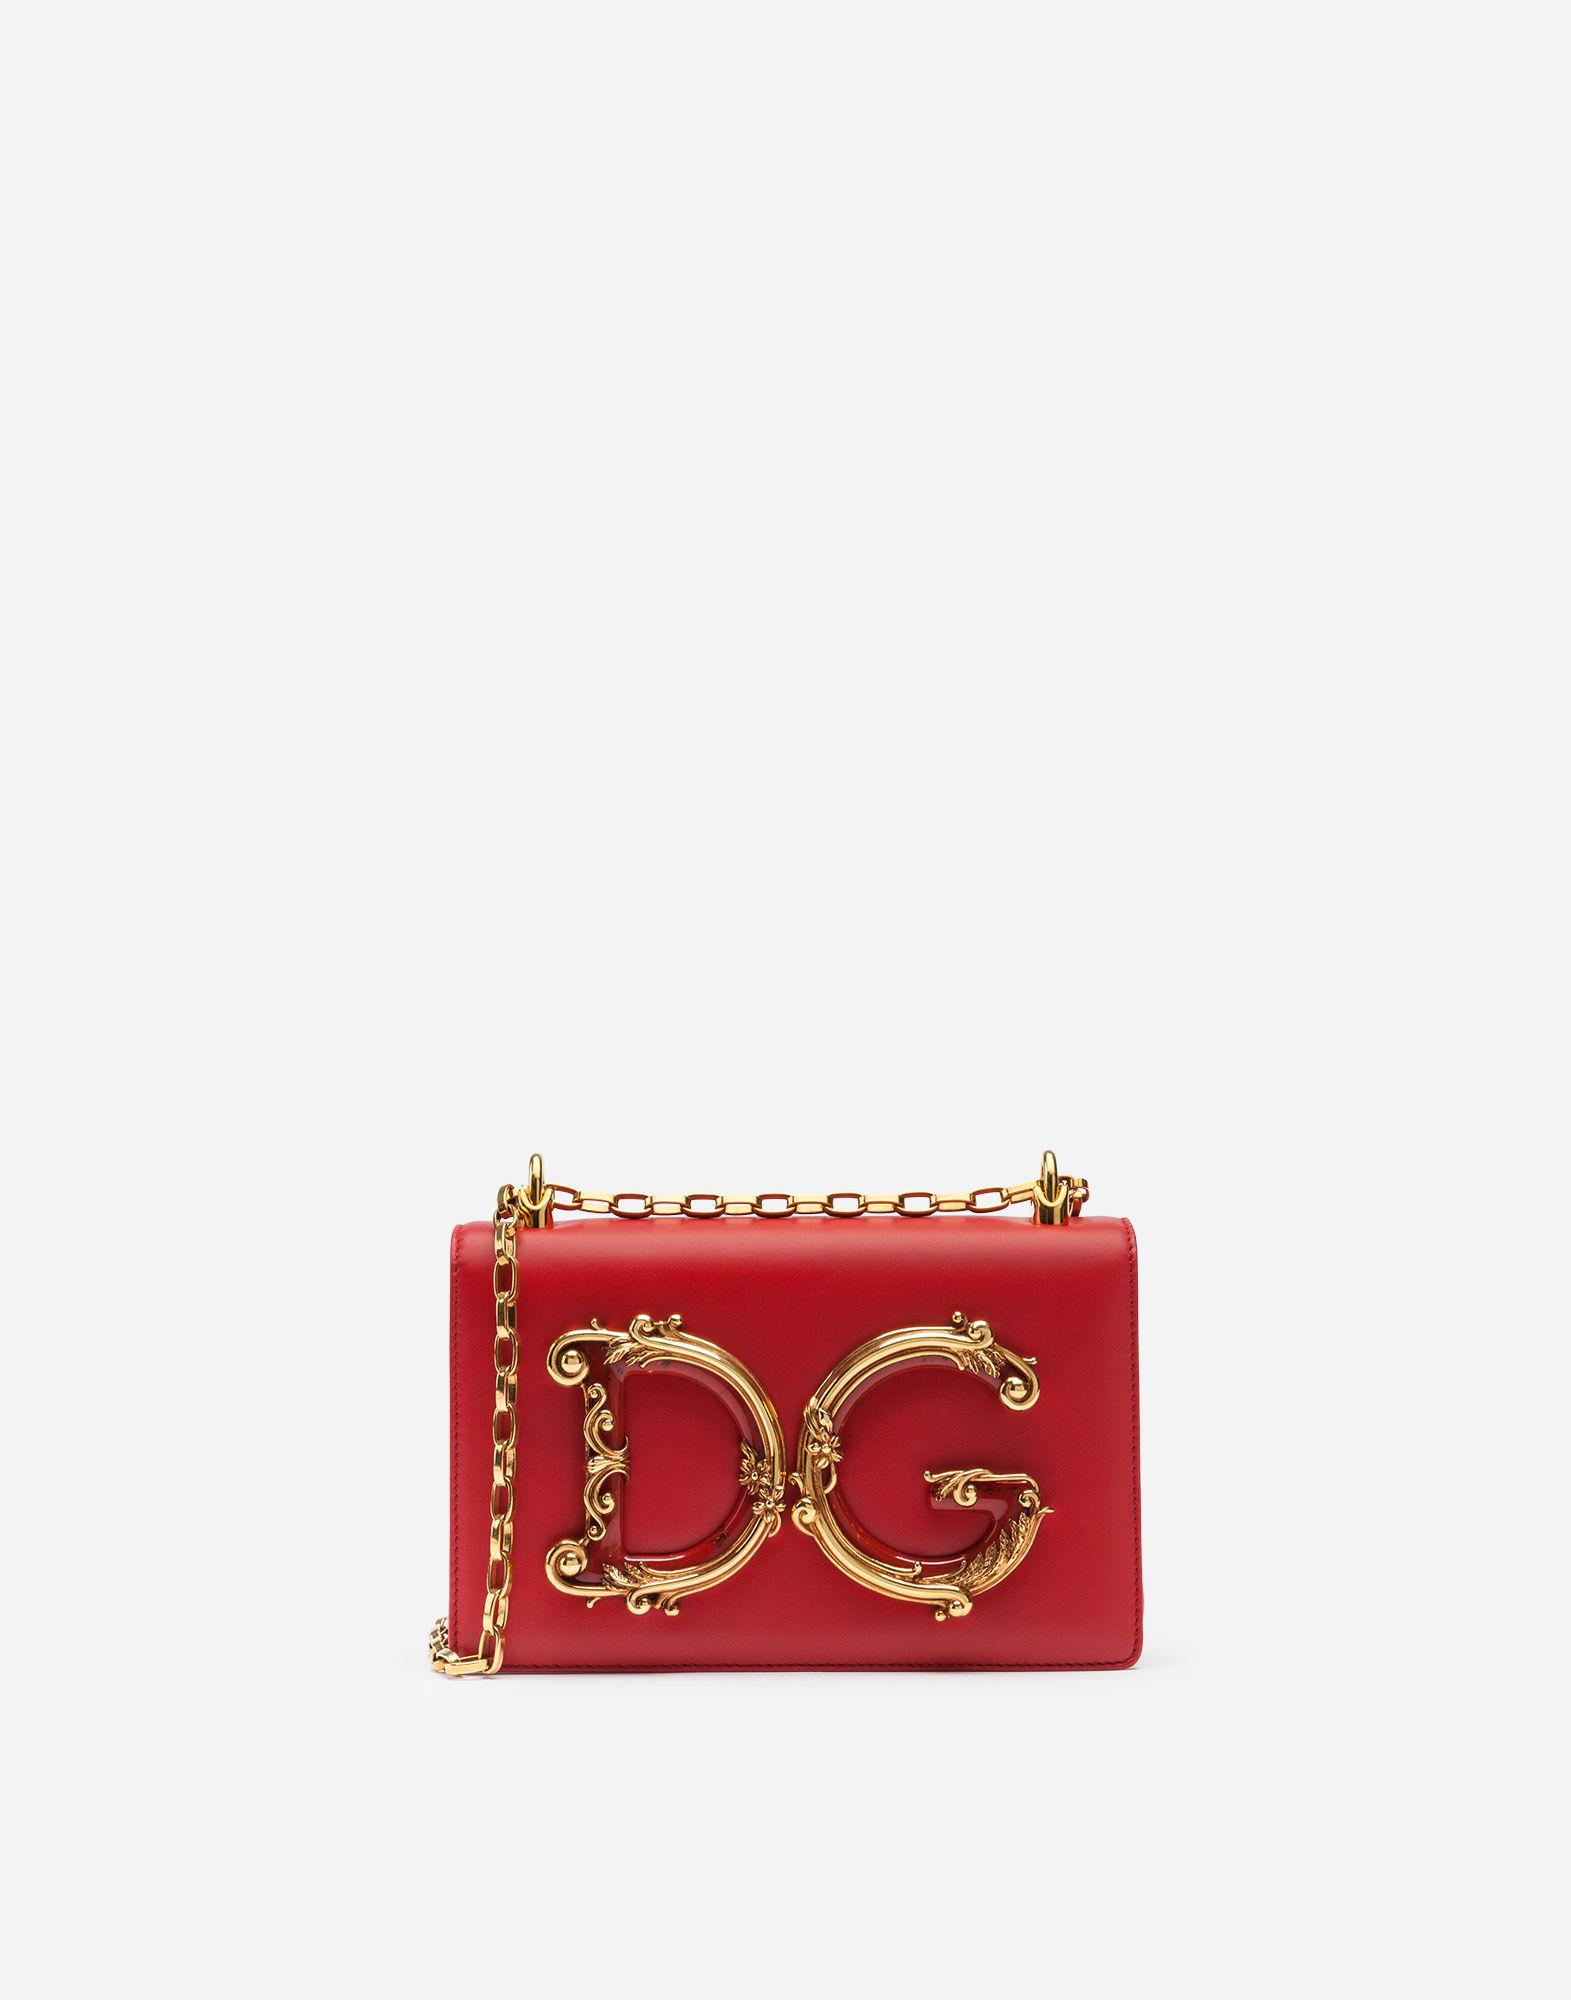 d5d8c357c973 Lyst - Dolce   Gabbana Dg Girls Shoulder Bag In Nappa Leather in Red